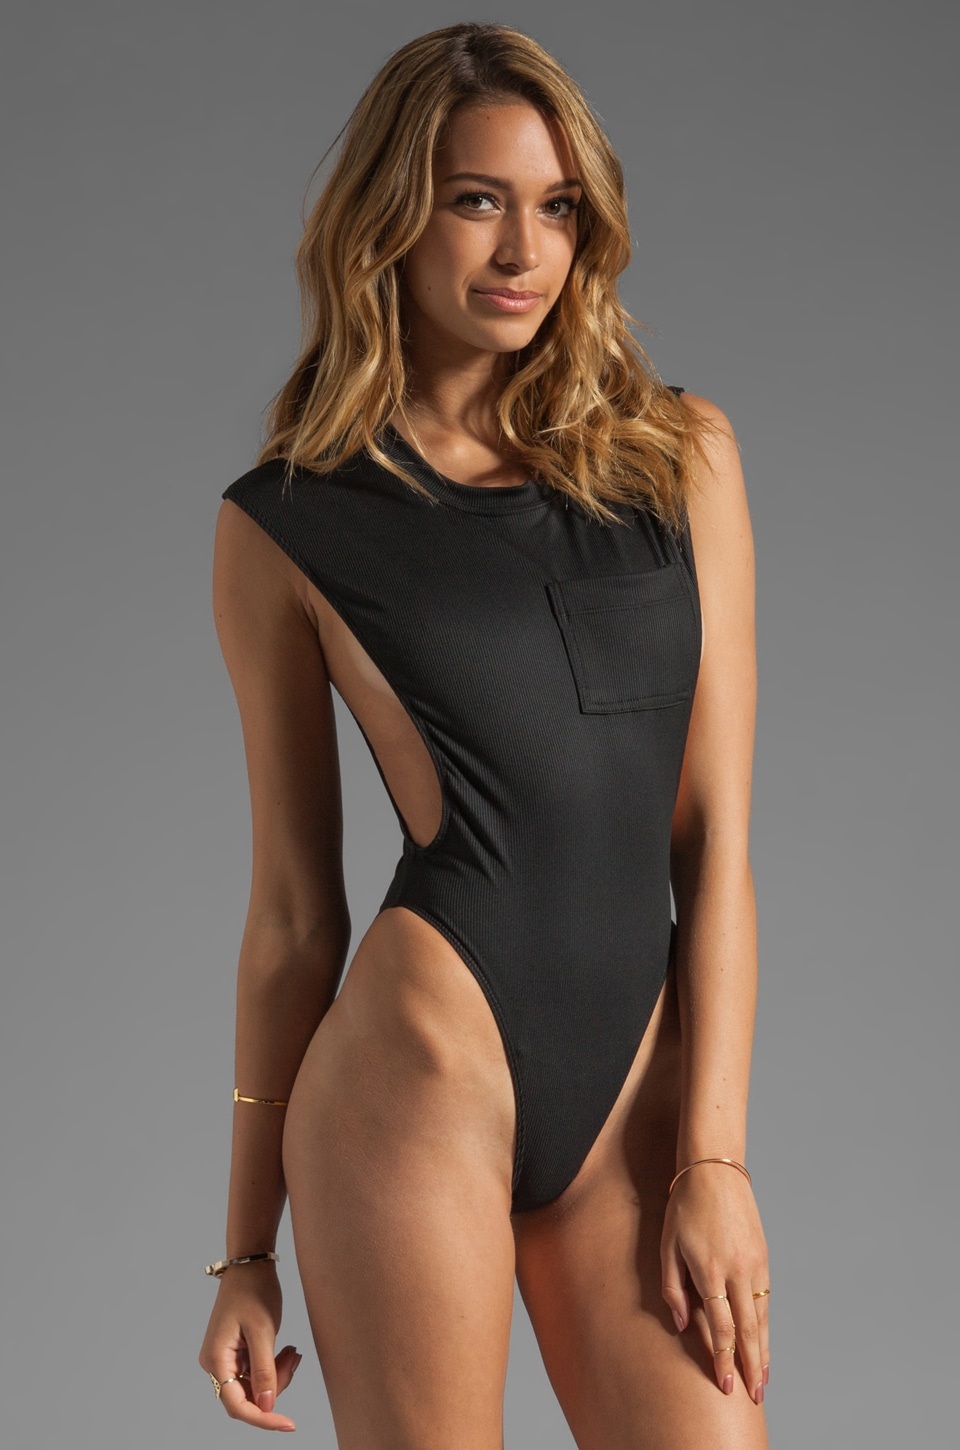 MINIMALE ANIMALE T-Kini One Piece in Black Sun Rib